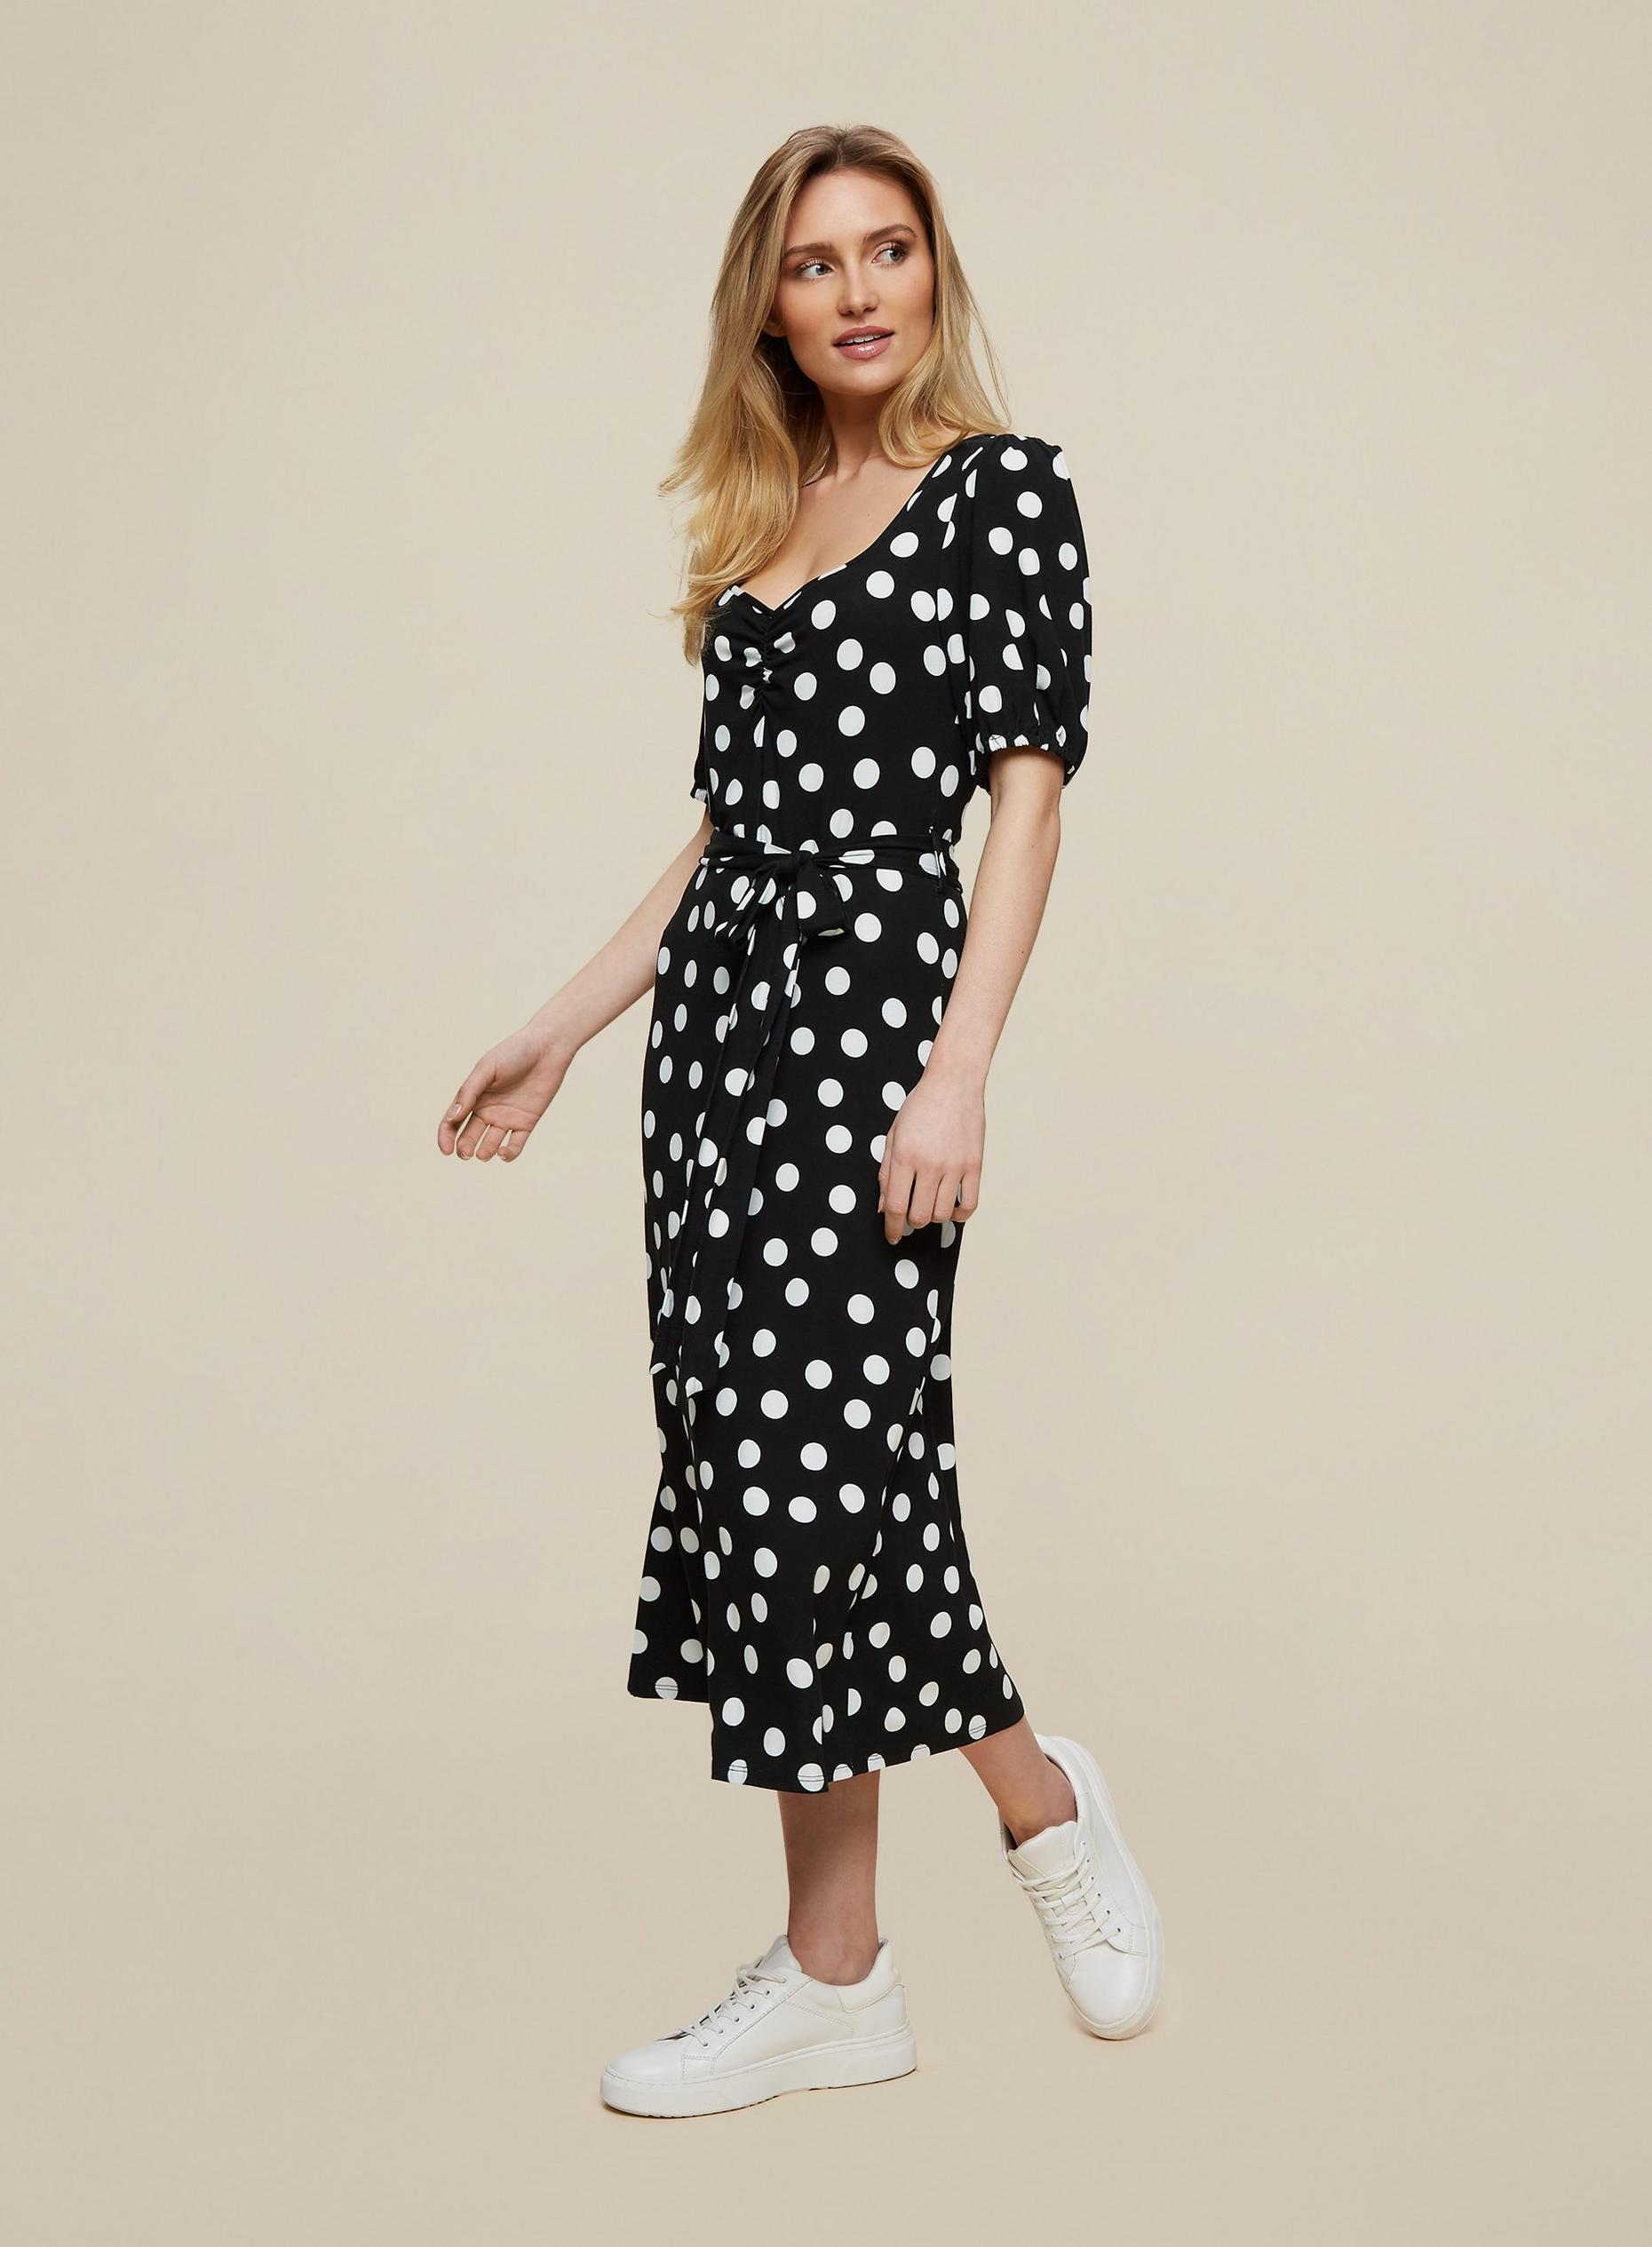 Monochrome Spot Print Midi Dress